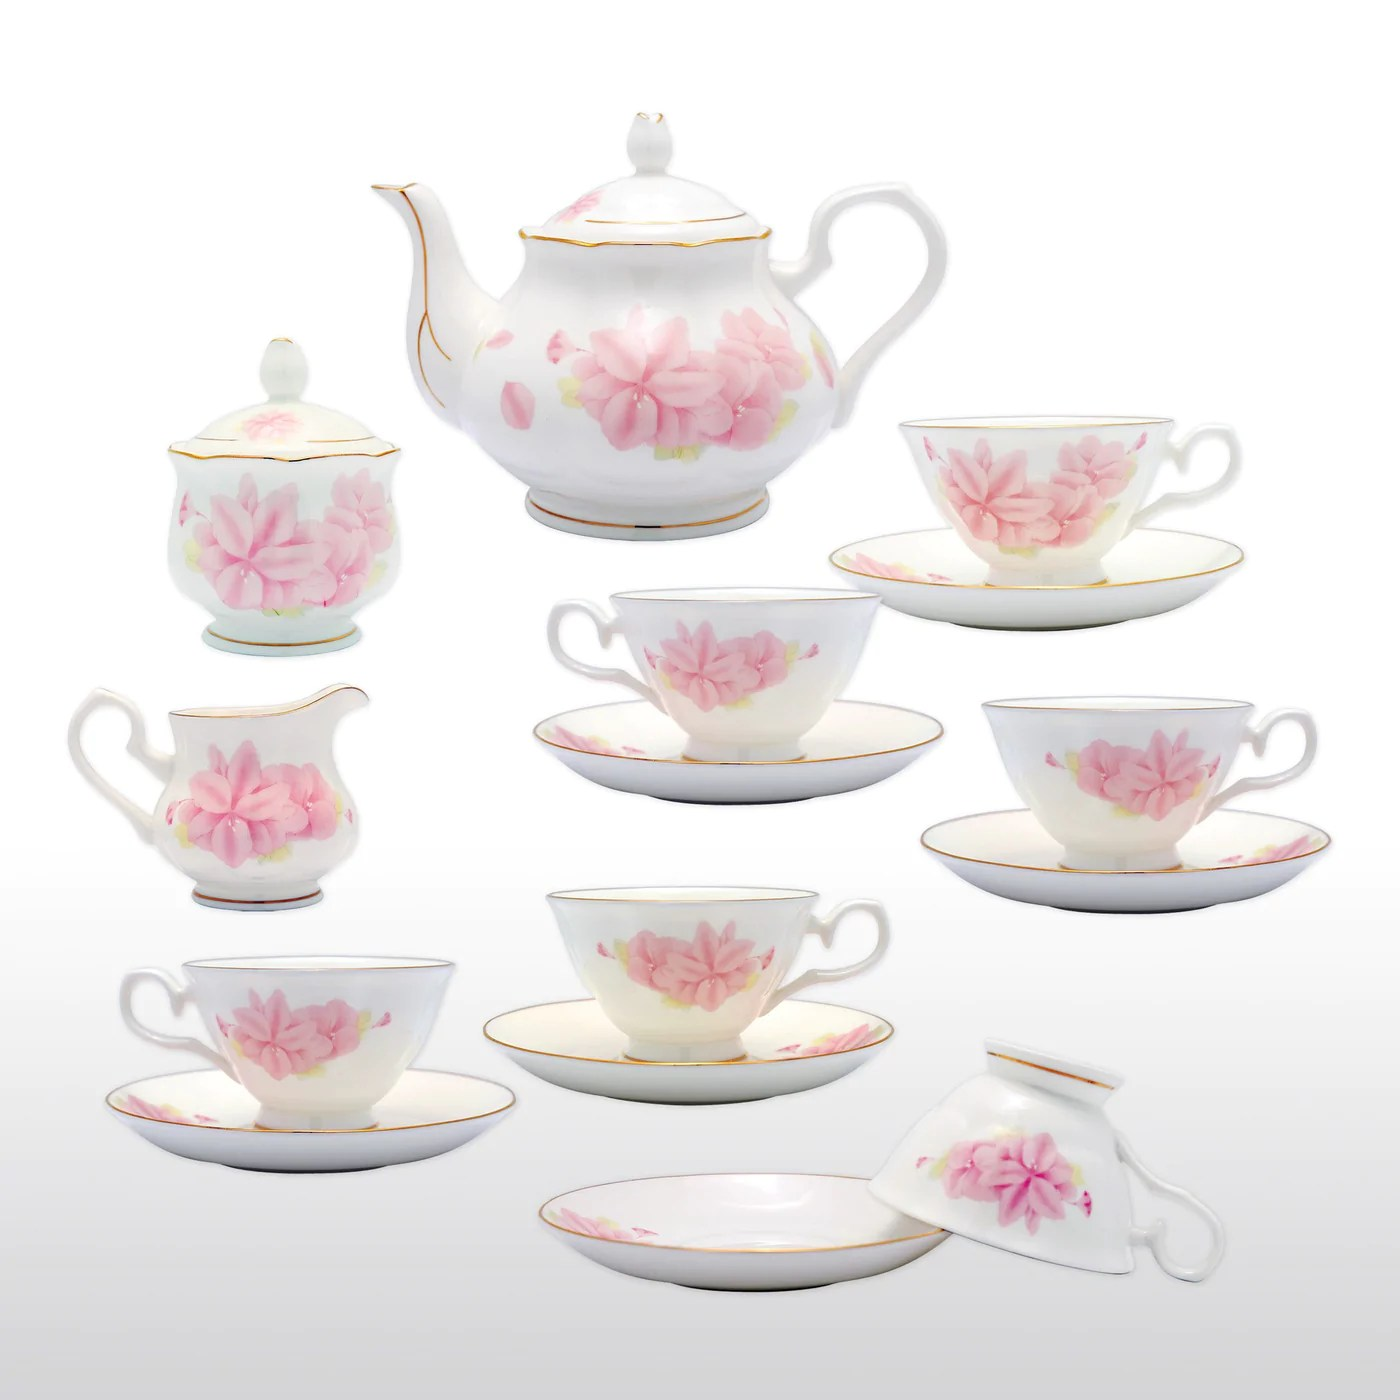 Teapot With Cup Fine Bone China 15 Piece Coffee Tea Set Pink Kapok With Teapot Cups Saucers Sugar Bowl And Creamer